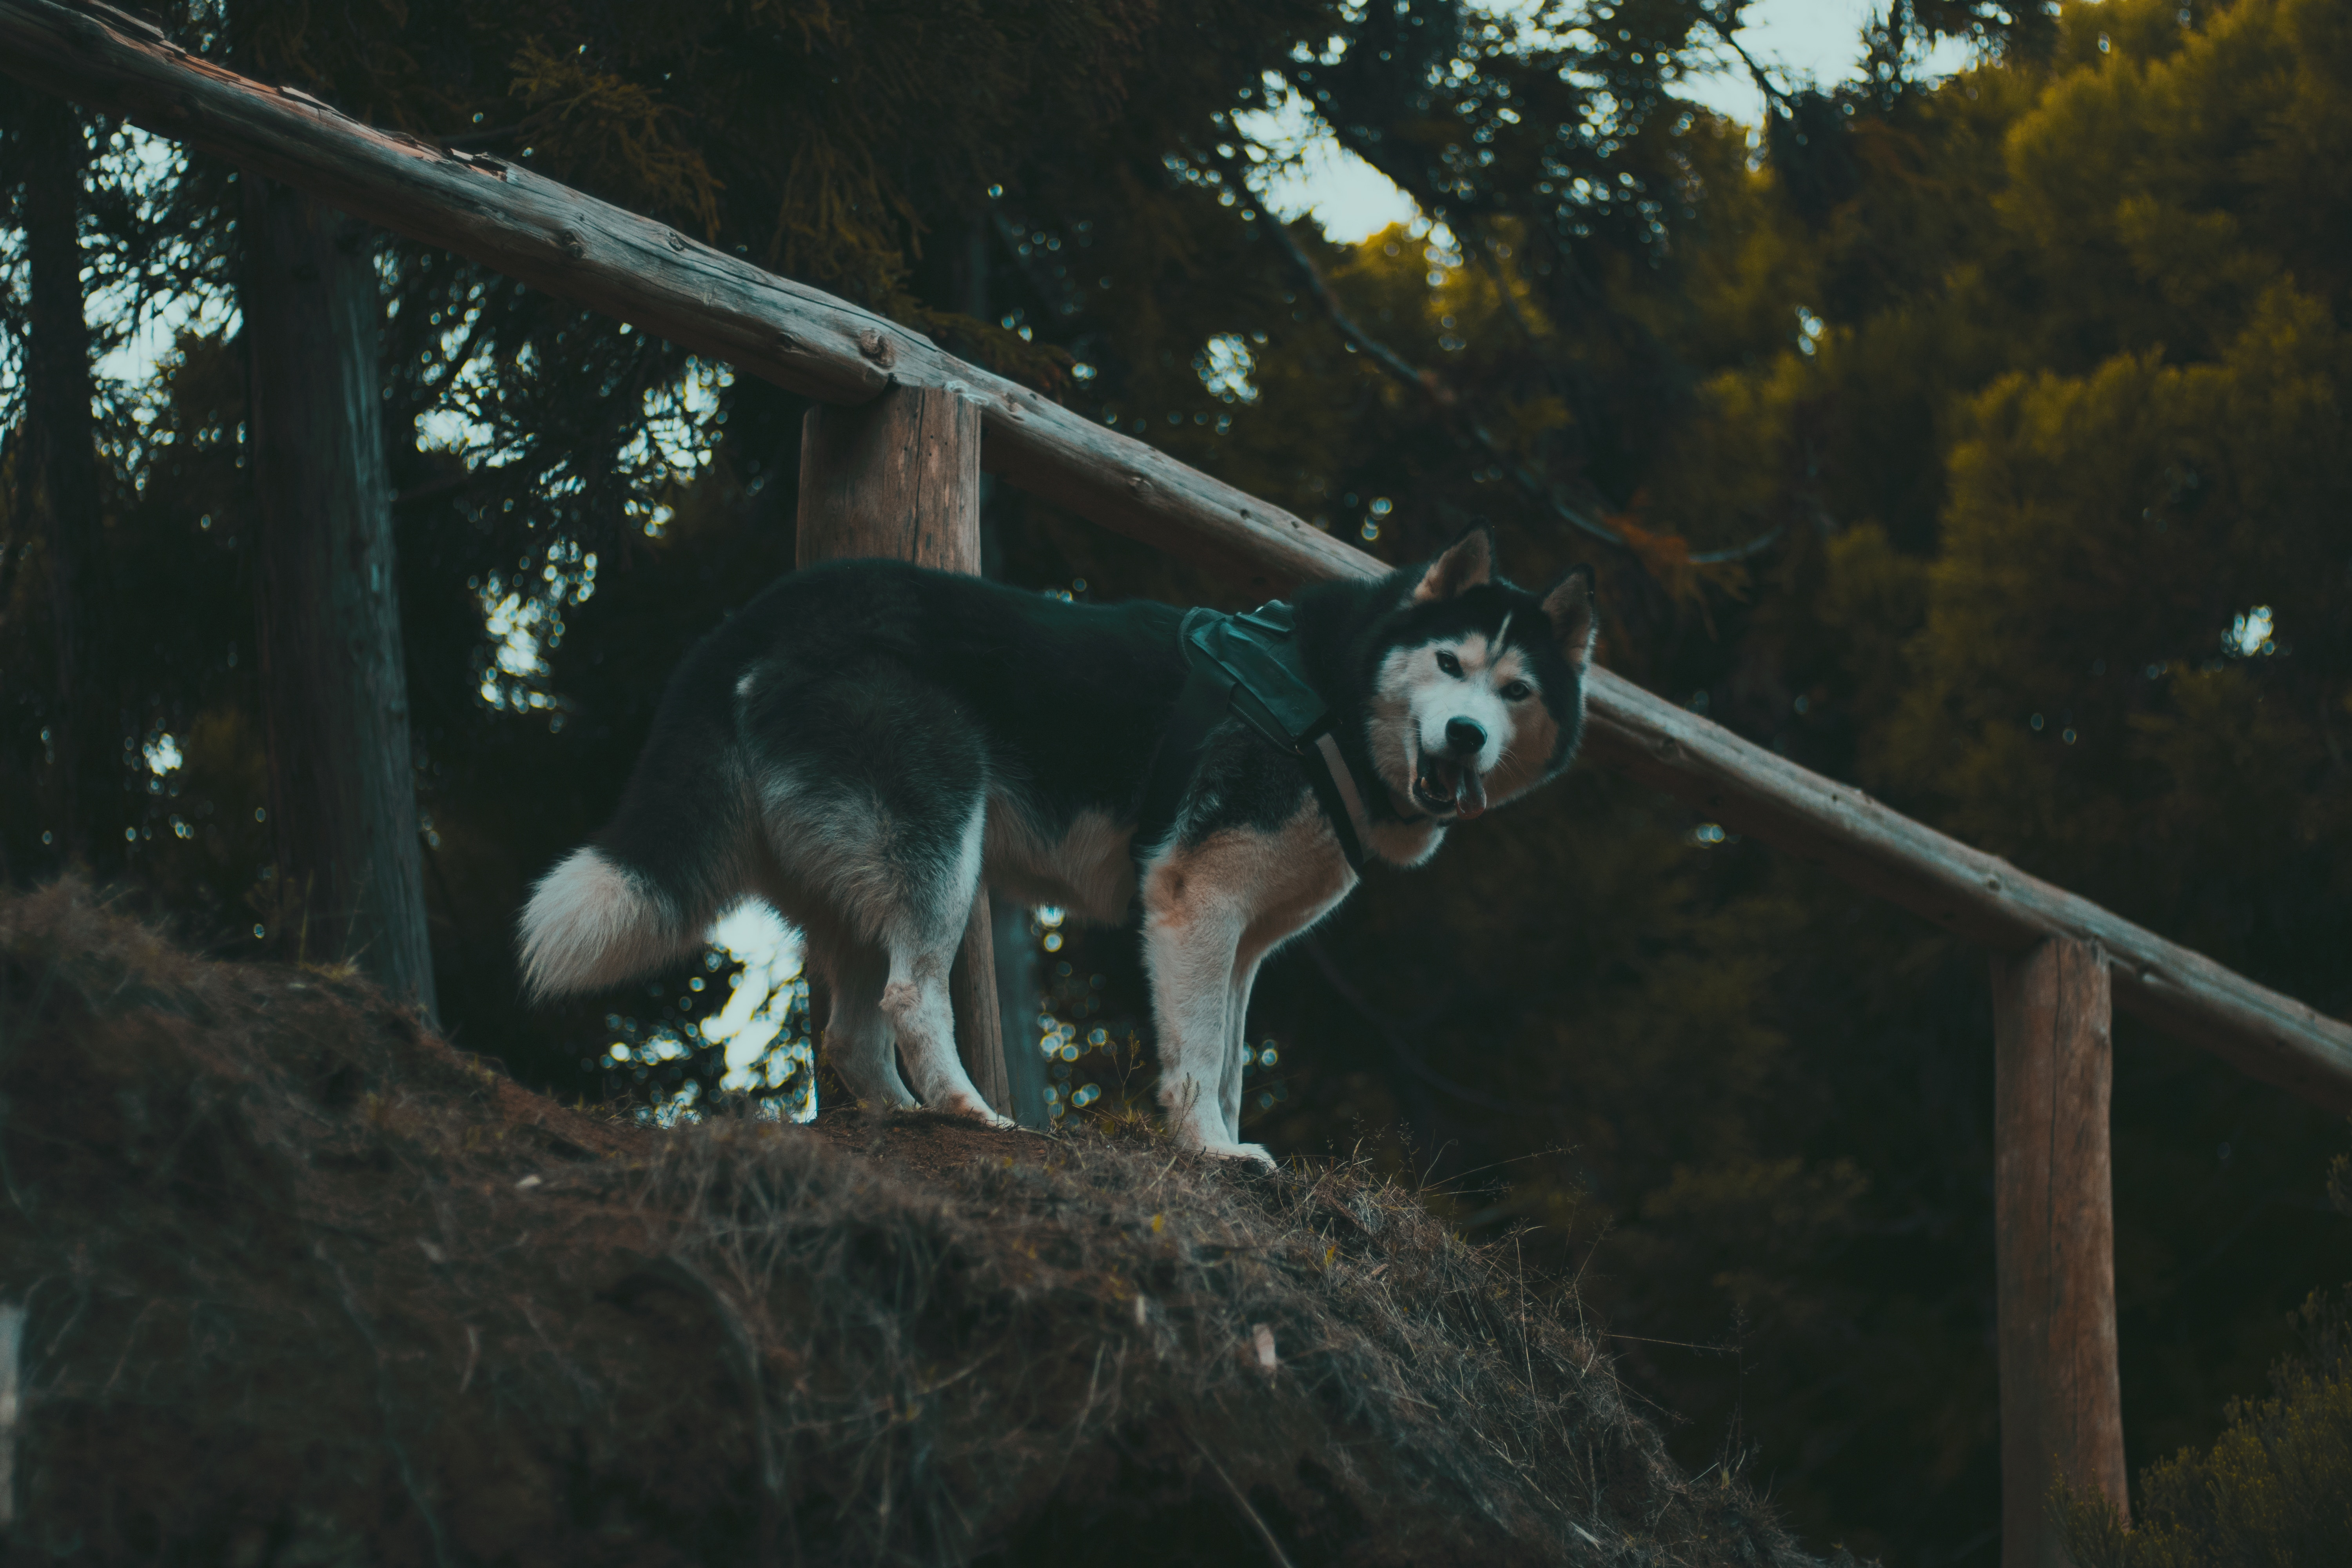 119401 download wallpaper Animals, Husky, Haska, Dog, Stroll, Worth screensavers and pictures for free